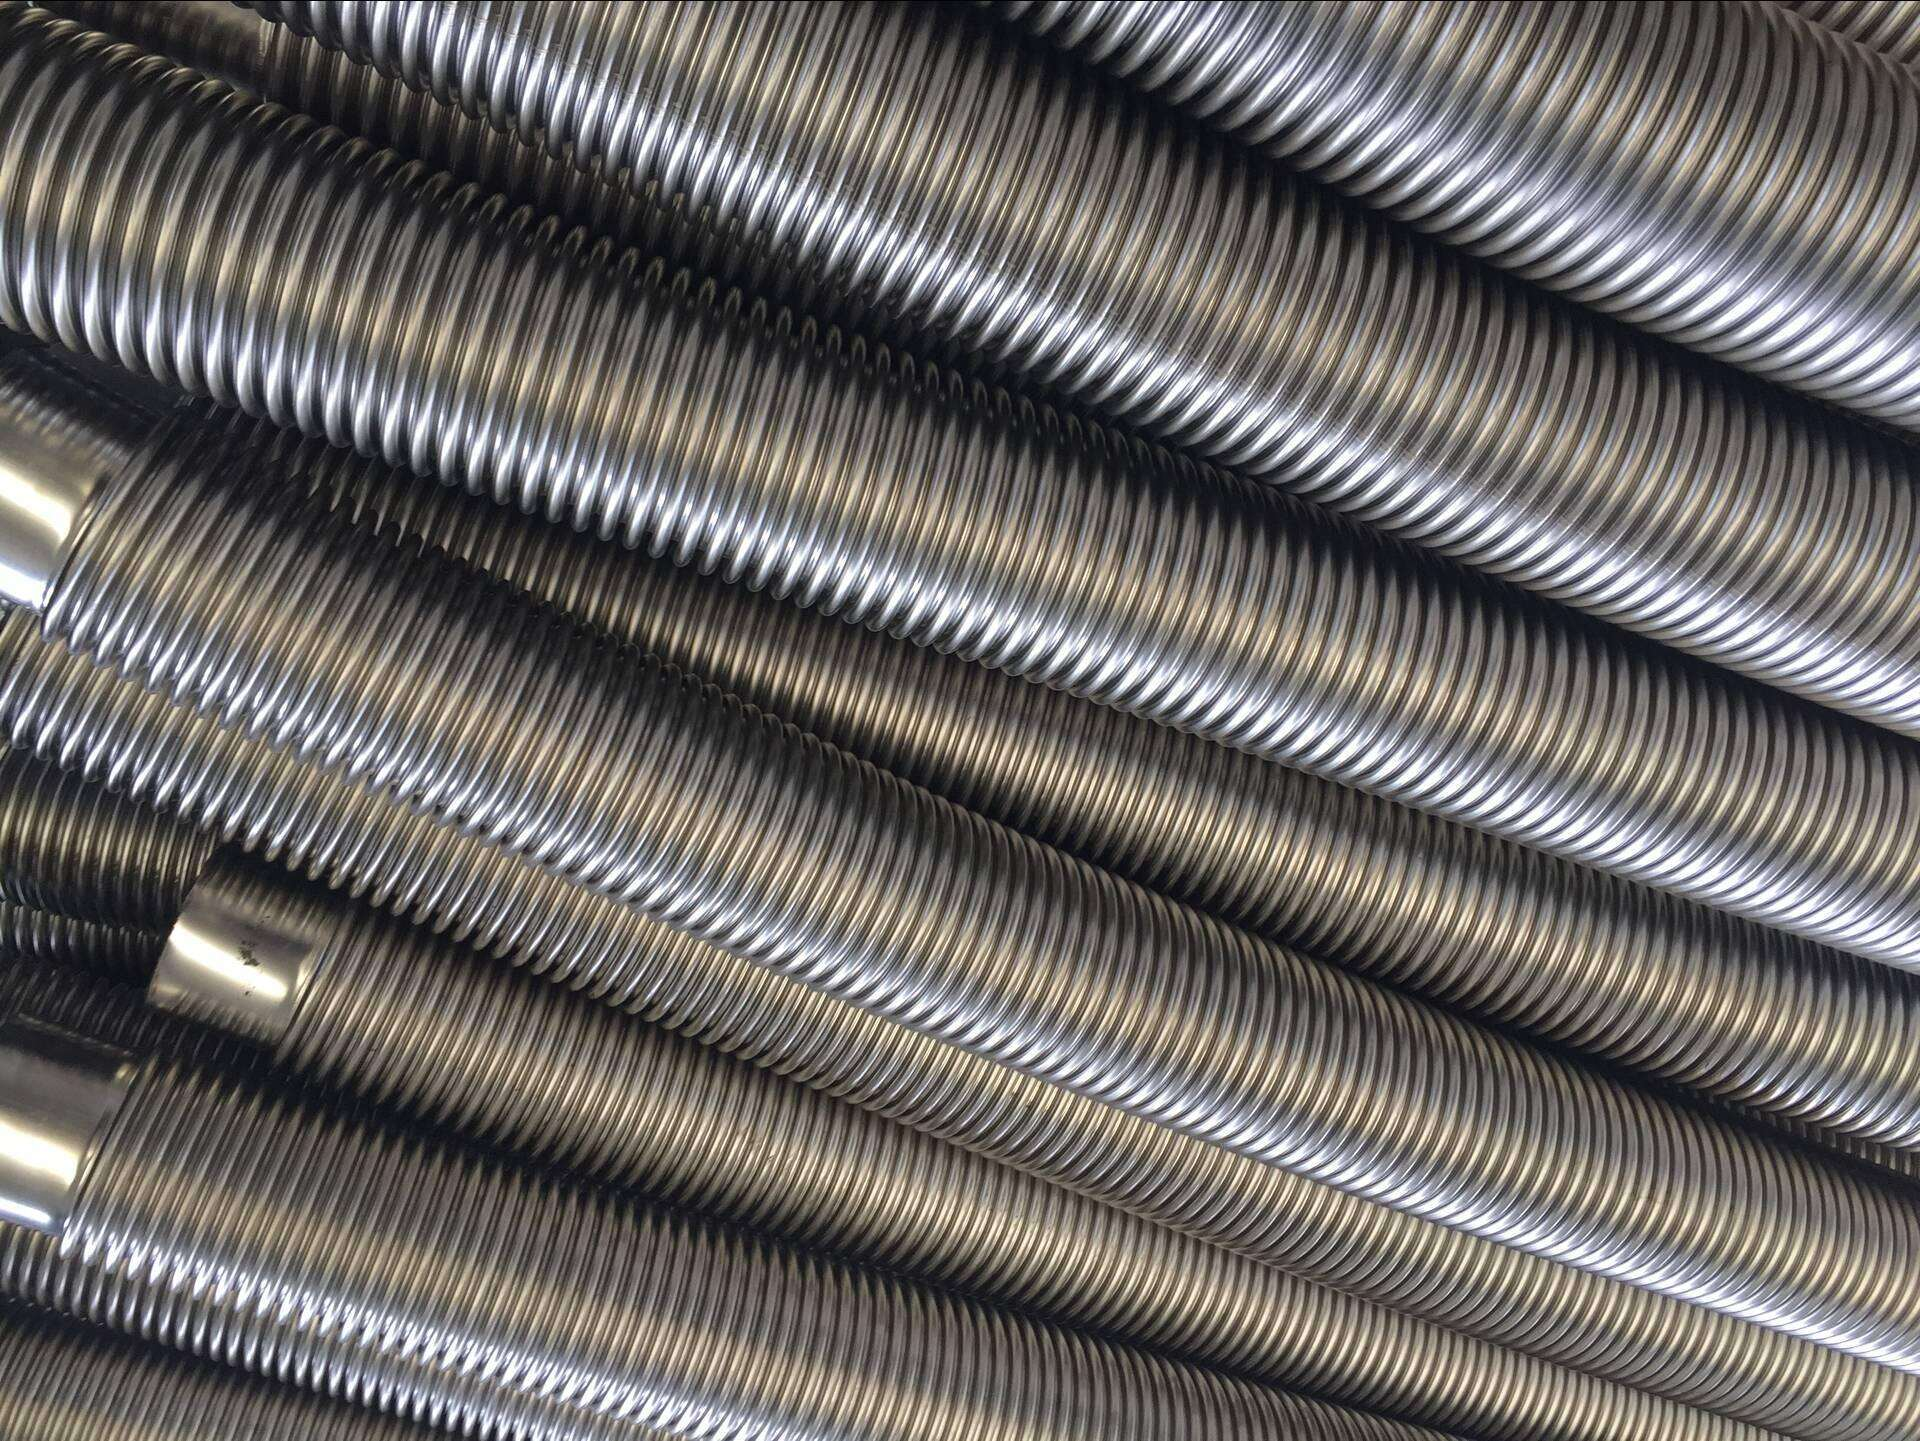 Bendable Corrugated Flexible Metal Tubing pictures & photos